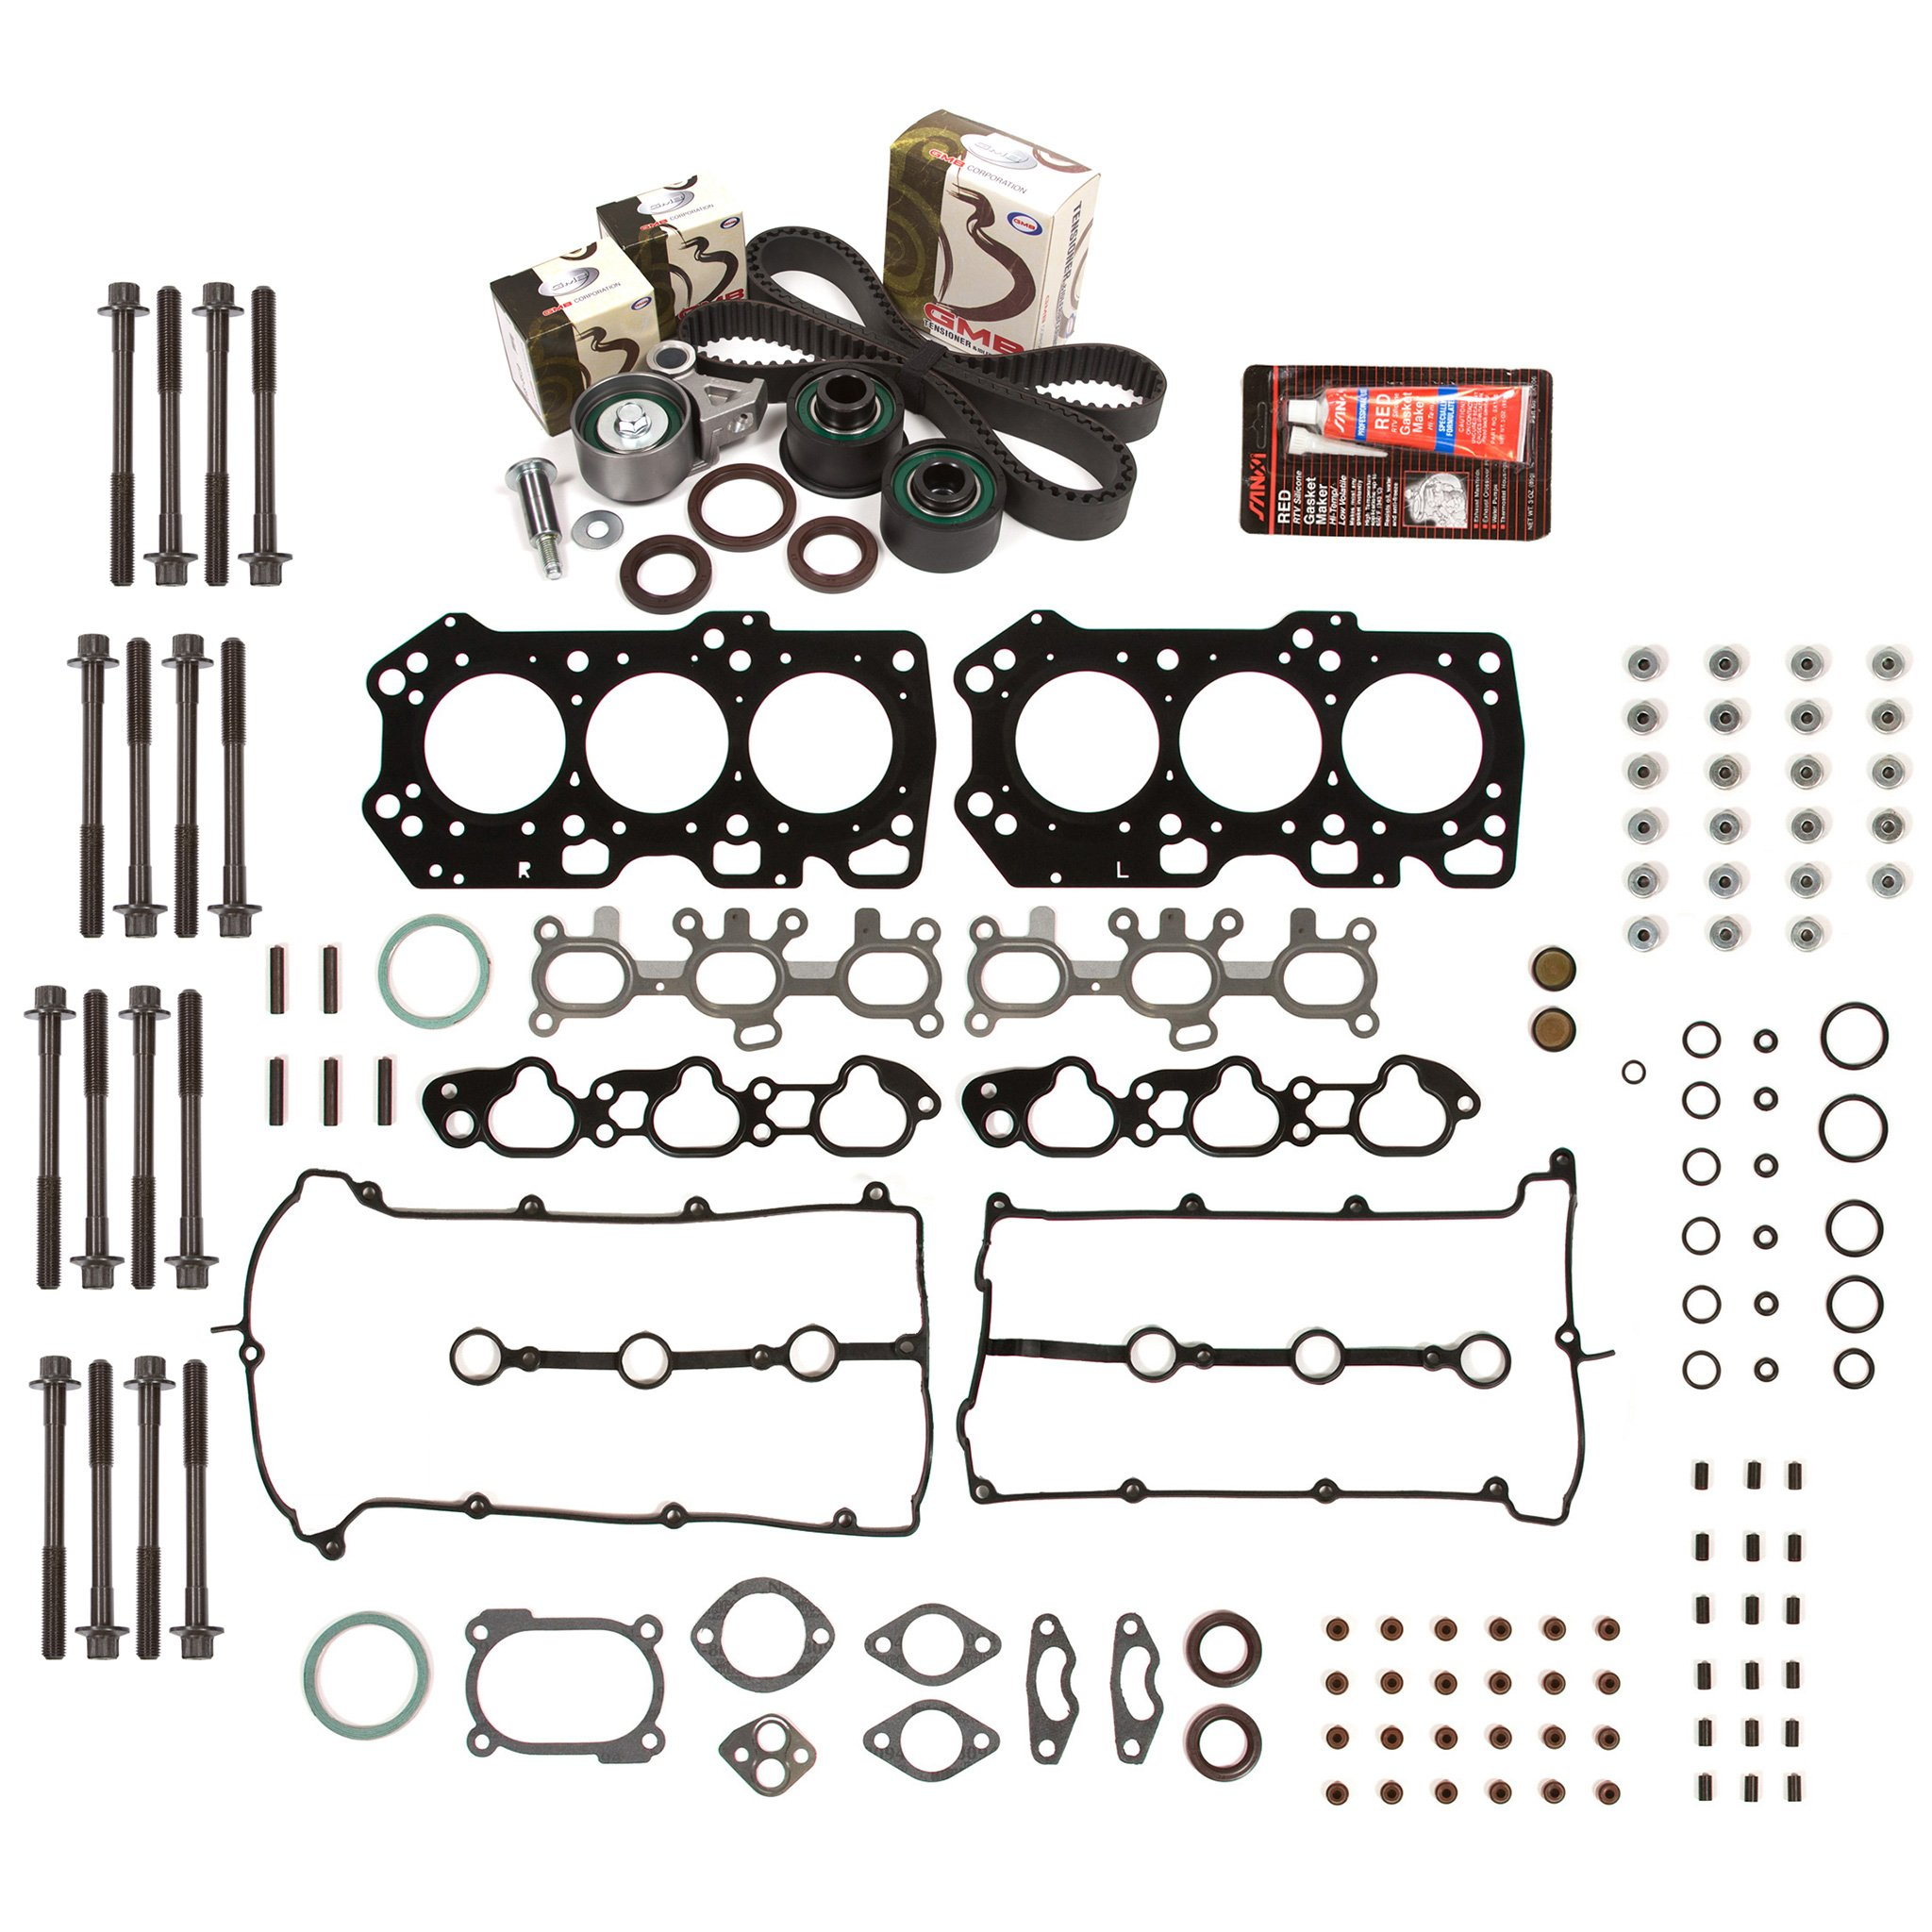 Evergreen HSHBTBK6015 Head Gasket Set Head Bolts Timing Belt Kit 93-02 Mazda Ford 2.5 DOHC KL by Evergreen Parts And Components